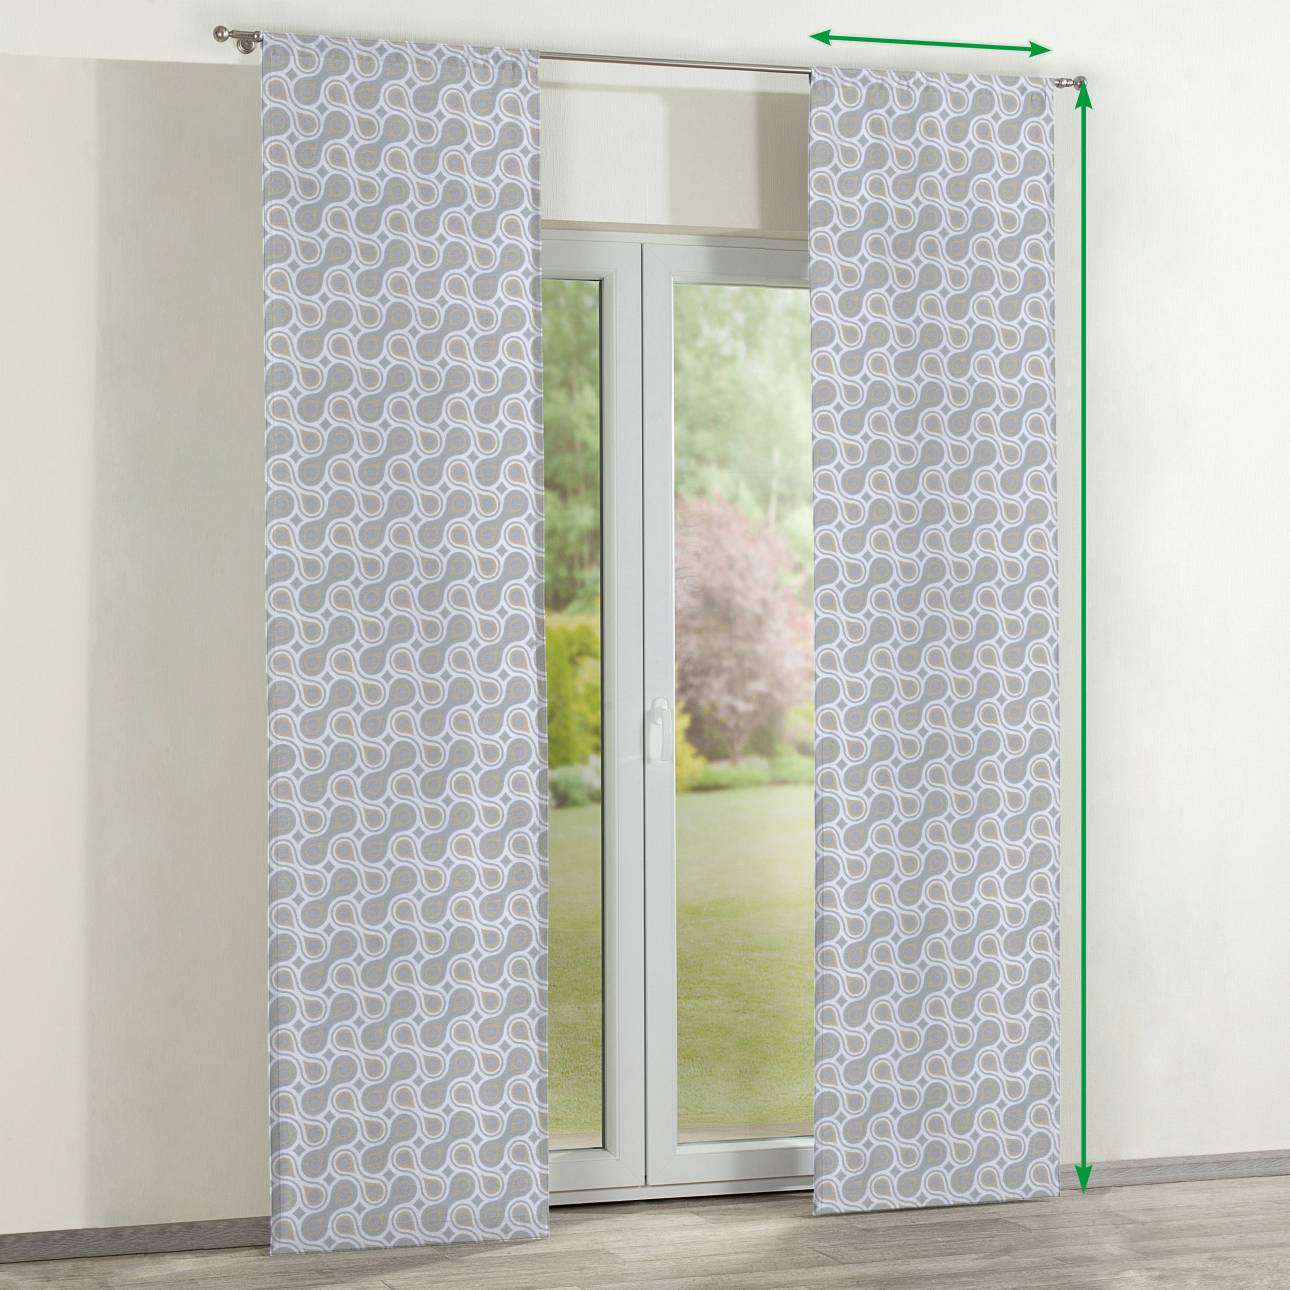 Slot panel curtains – Set of 2 in collection Flowers, fabric: 311-11